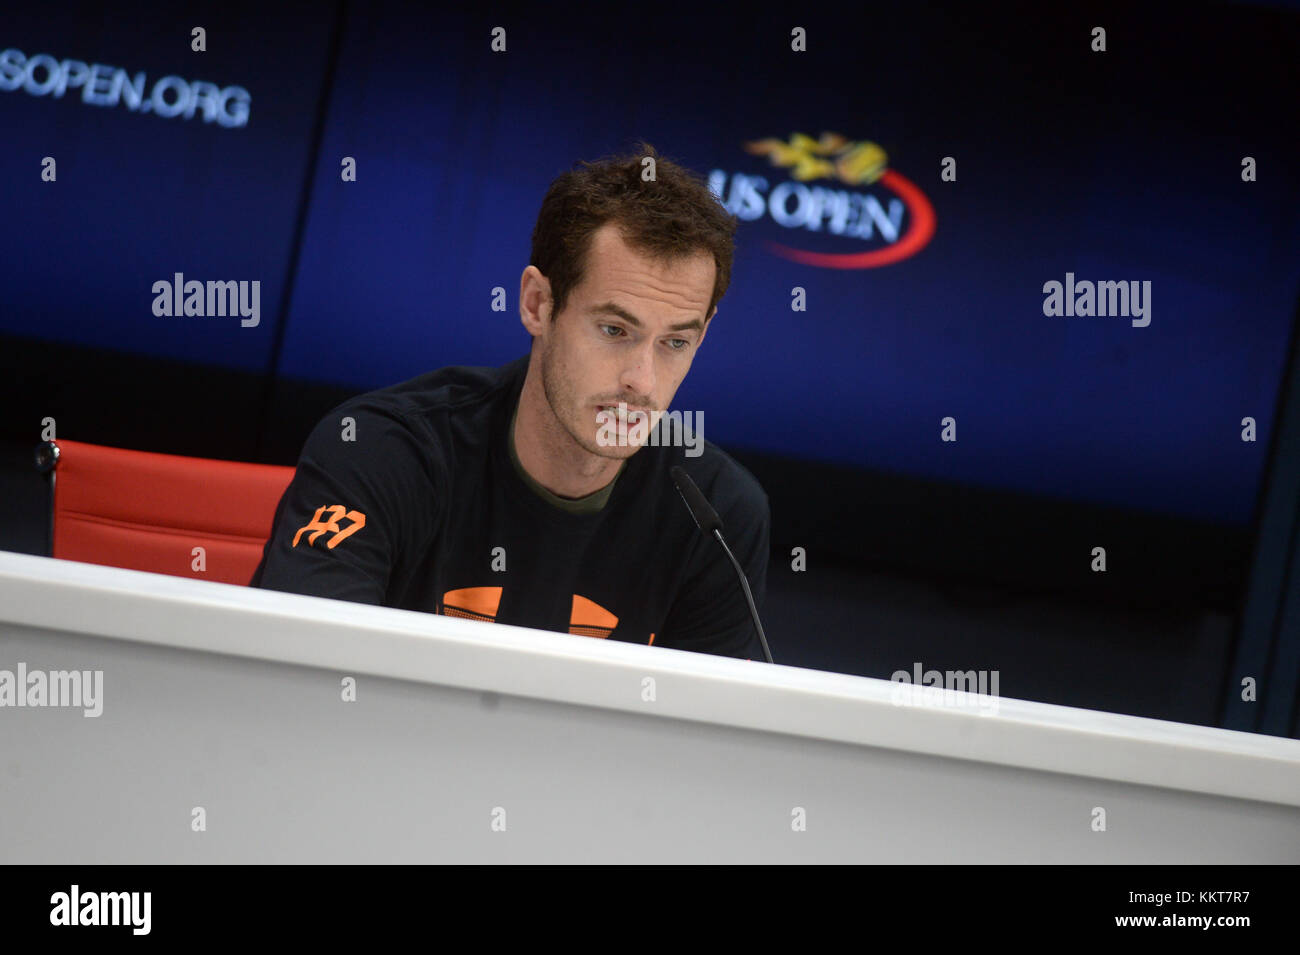 NEW YORK, USA - AUGUST 26: Andy Murray speaks during a press conference ahead of 2017 US Open Tennis Championships - Stock Image